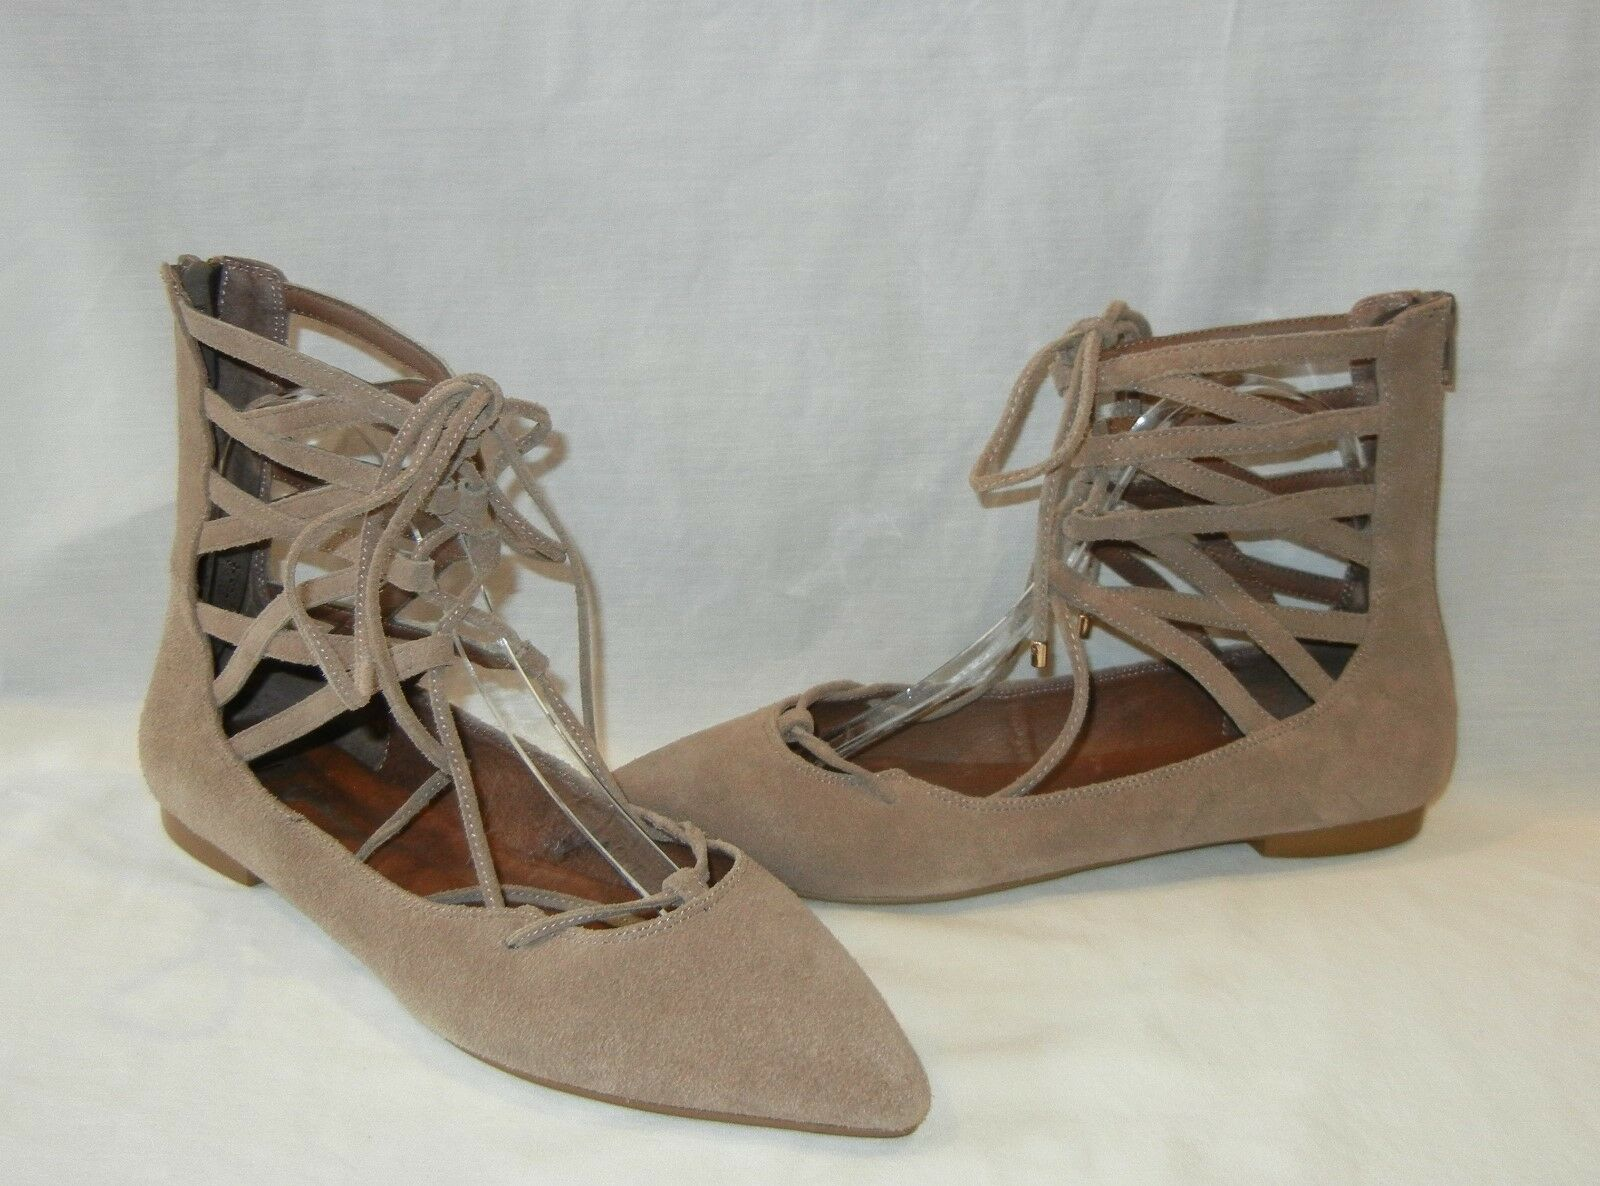 Jeffrey Campbell Women's Shay Suede Lace Up Sandal Flats Retail  130 size 9.5